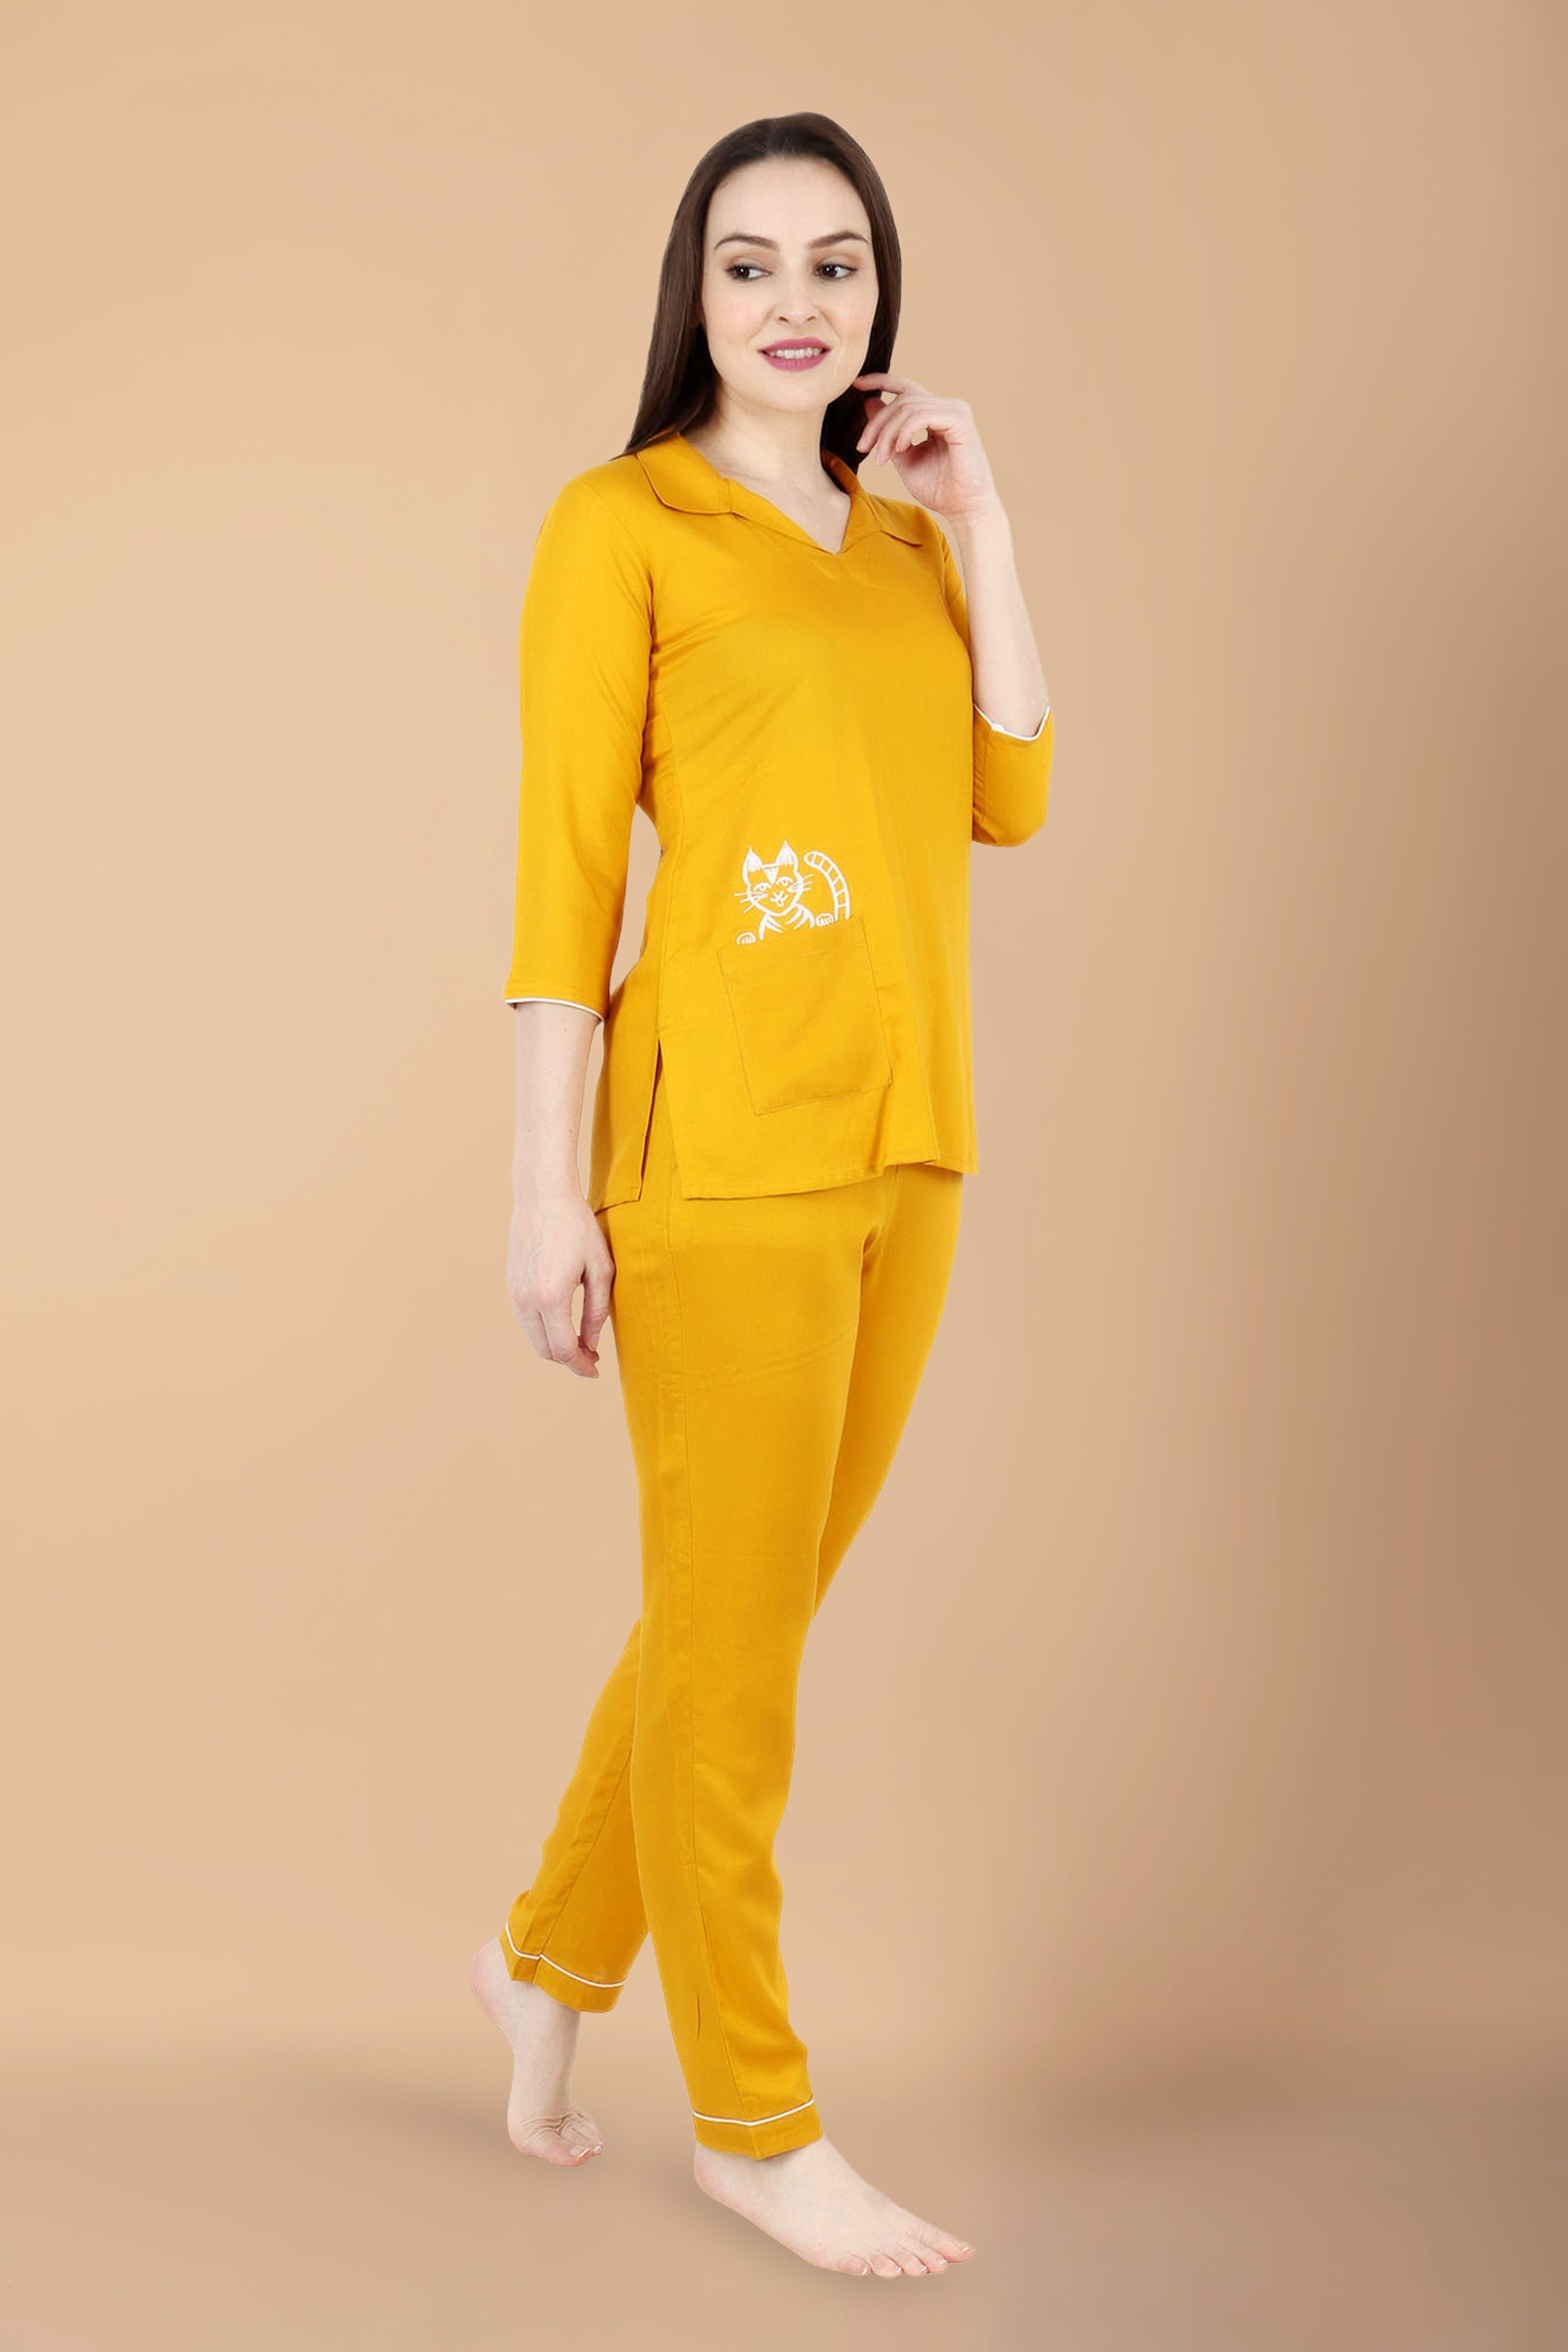 all size, all sizes night suits, apella, best online store, COLLAR, cotton night suit, lounge wear suits, MUSTARD, nigt suits online, plus size, plus size night suits, RAYON, rayon night suit